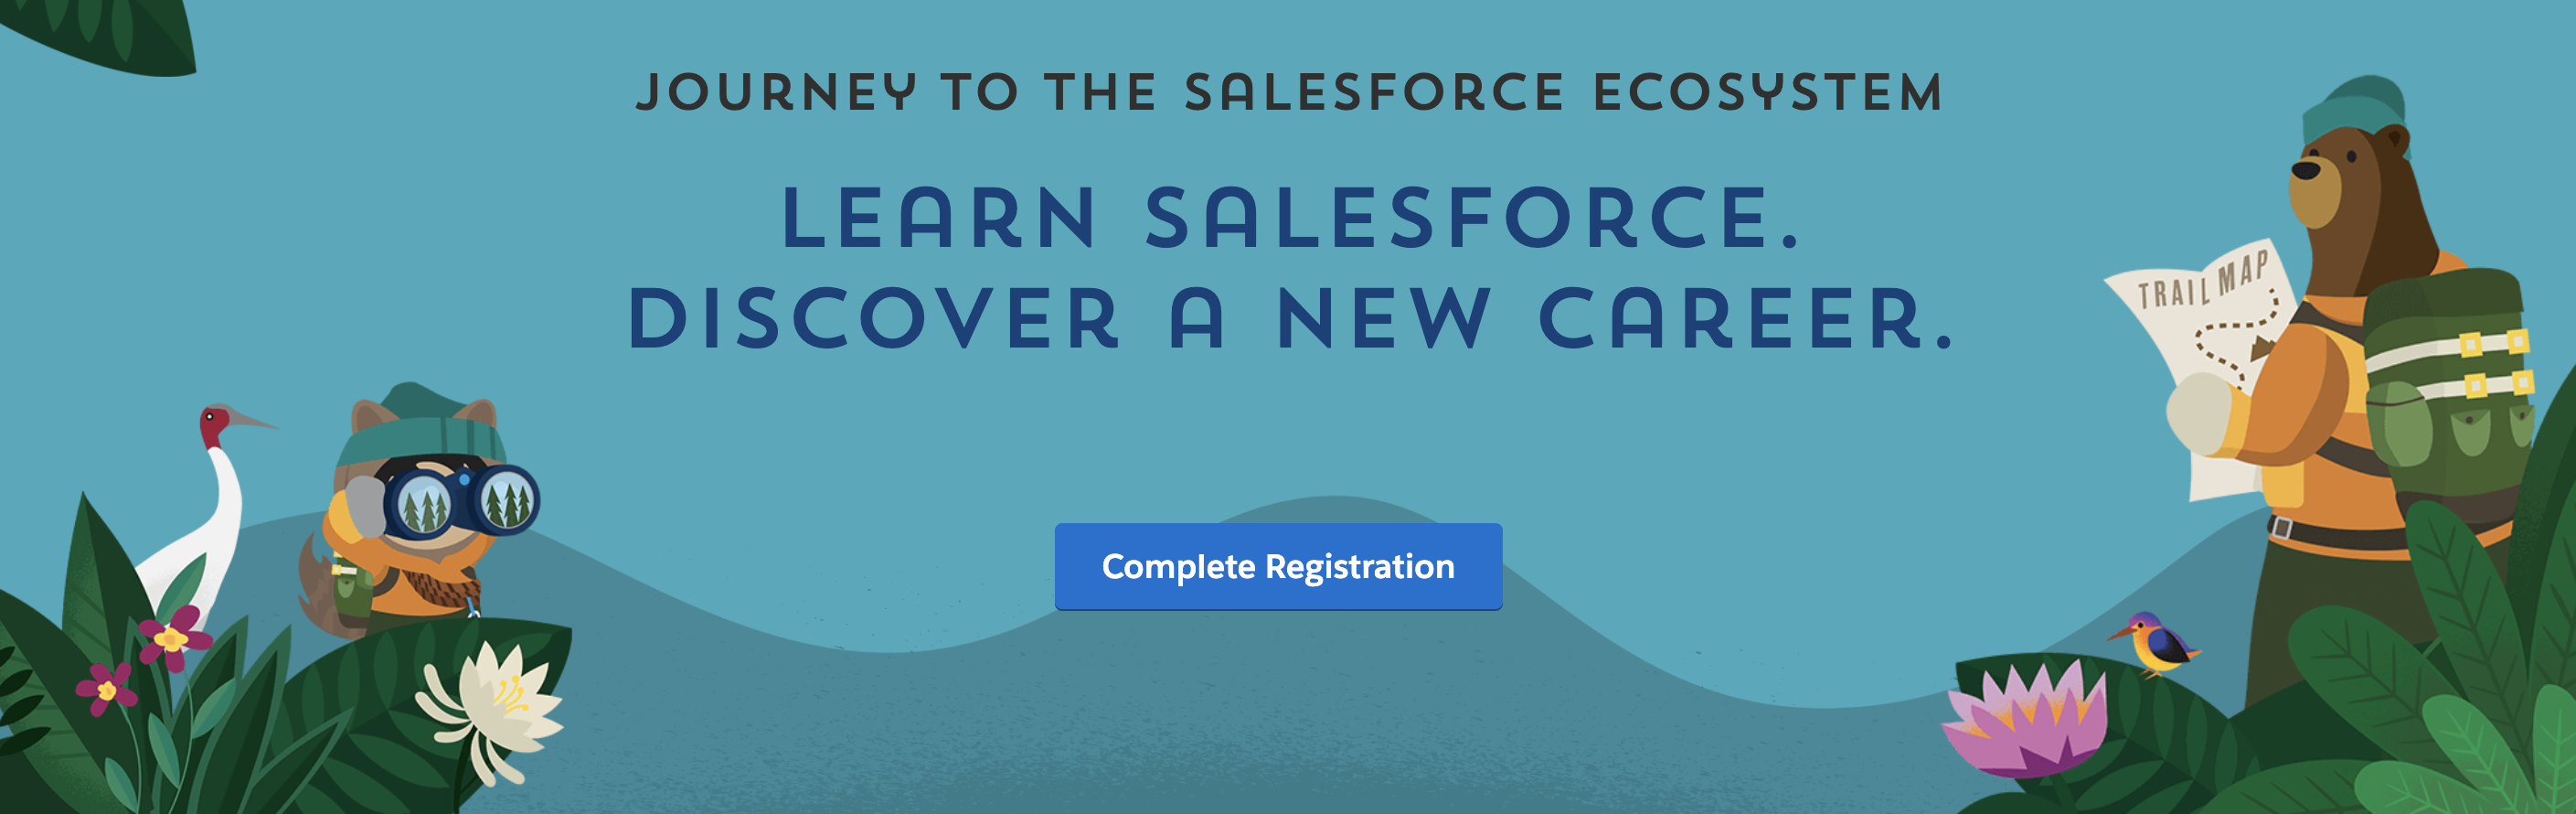 Journey to Salesforce